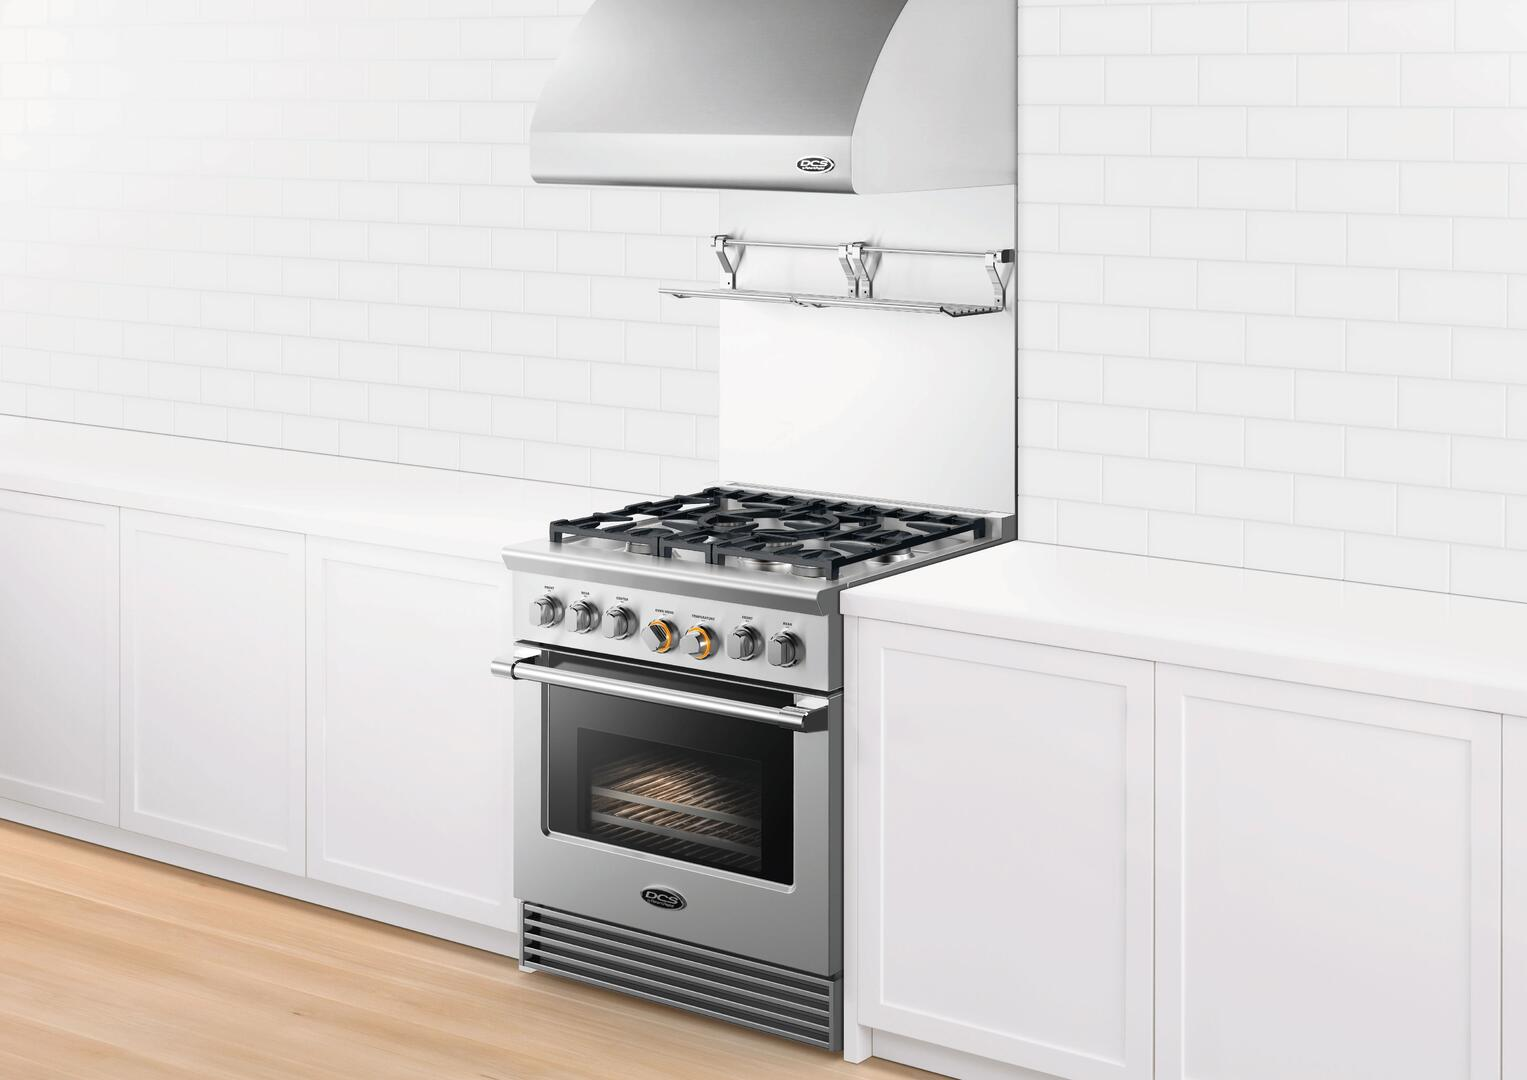 Dcs Rgv2305n 30 Inch Gas Freestanding Range With Sealed